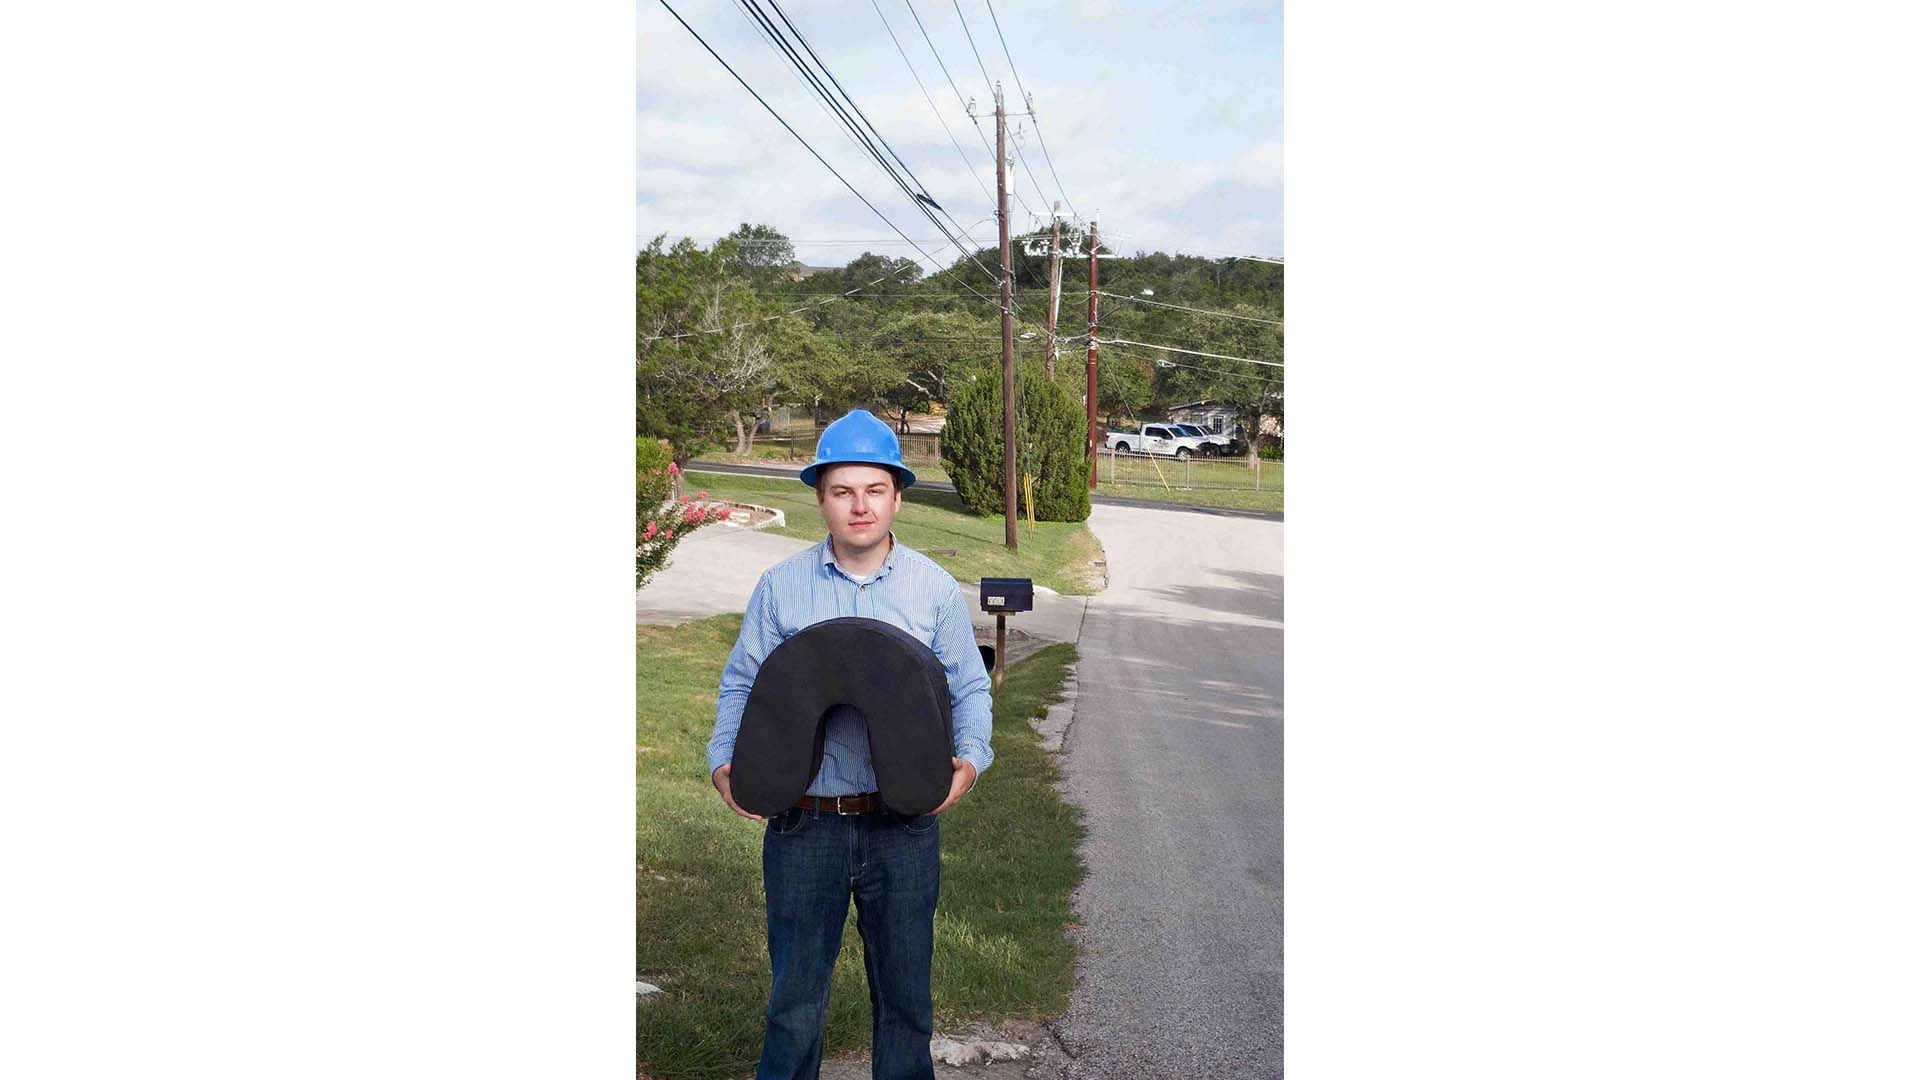 An engineer holds the custom spool-free cable coil used for aerial fiber deployment